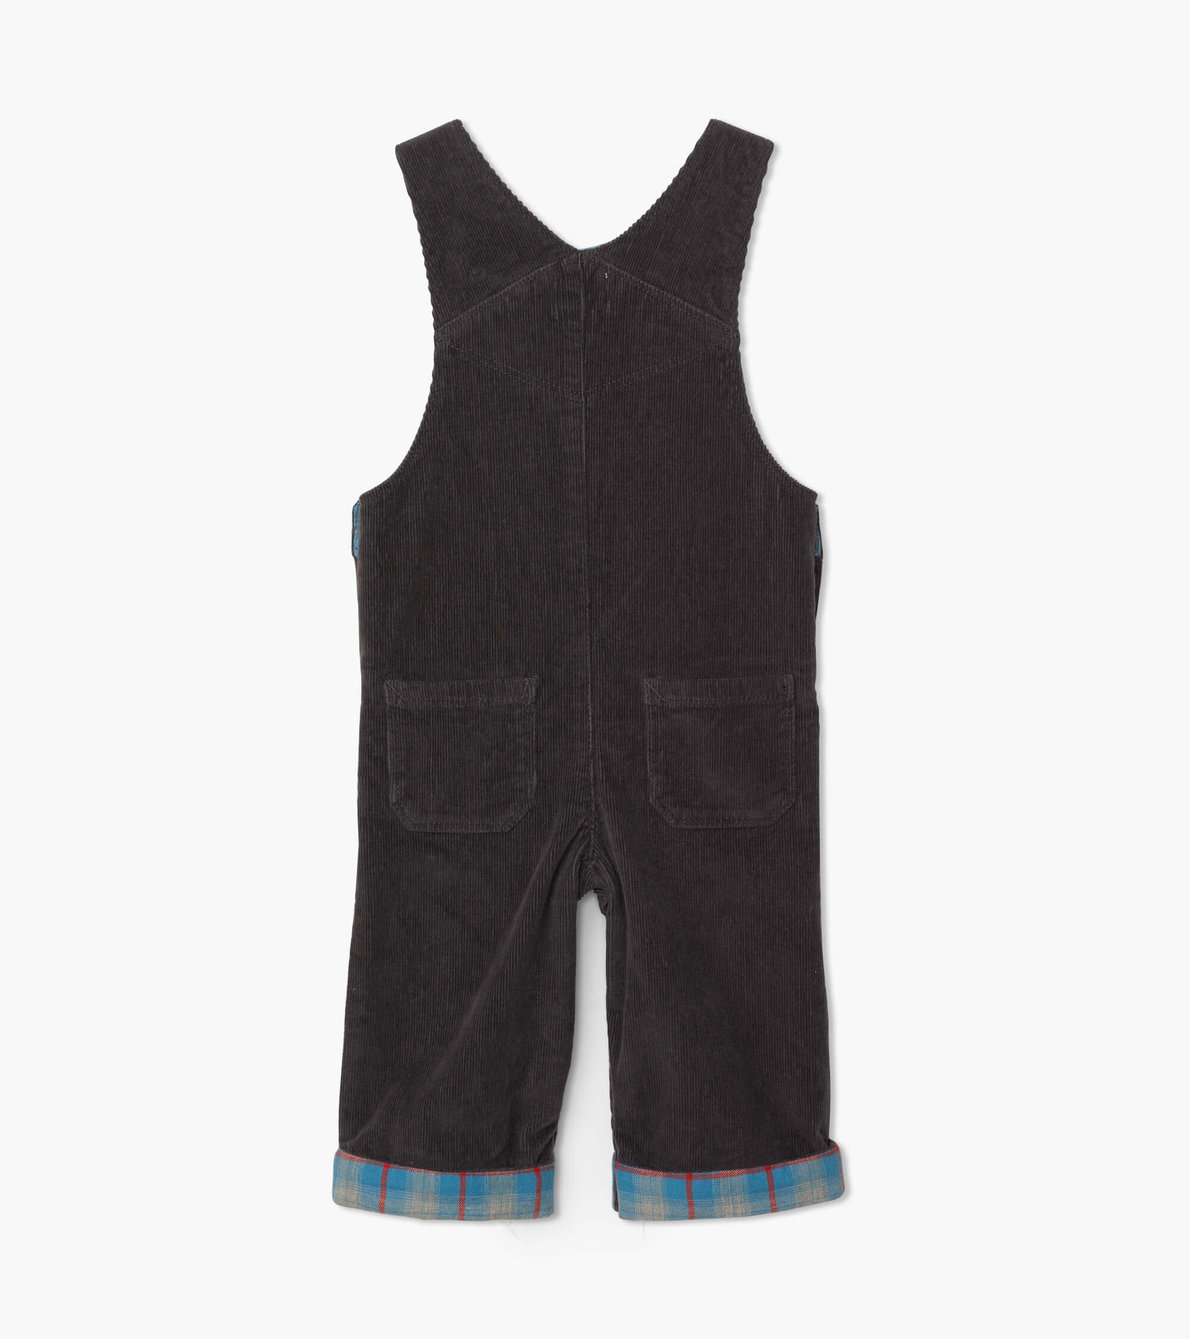 View larger image of Grey Stretch Cord Baby Overalls